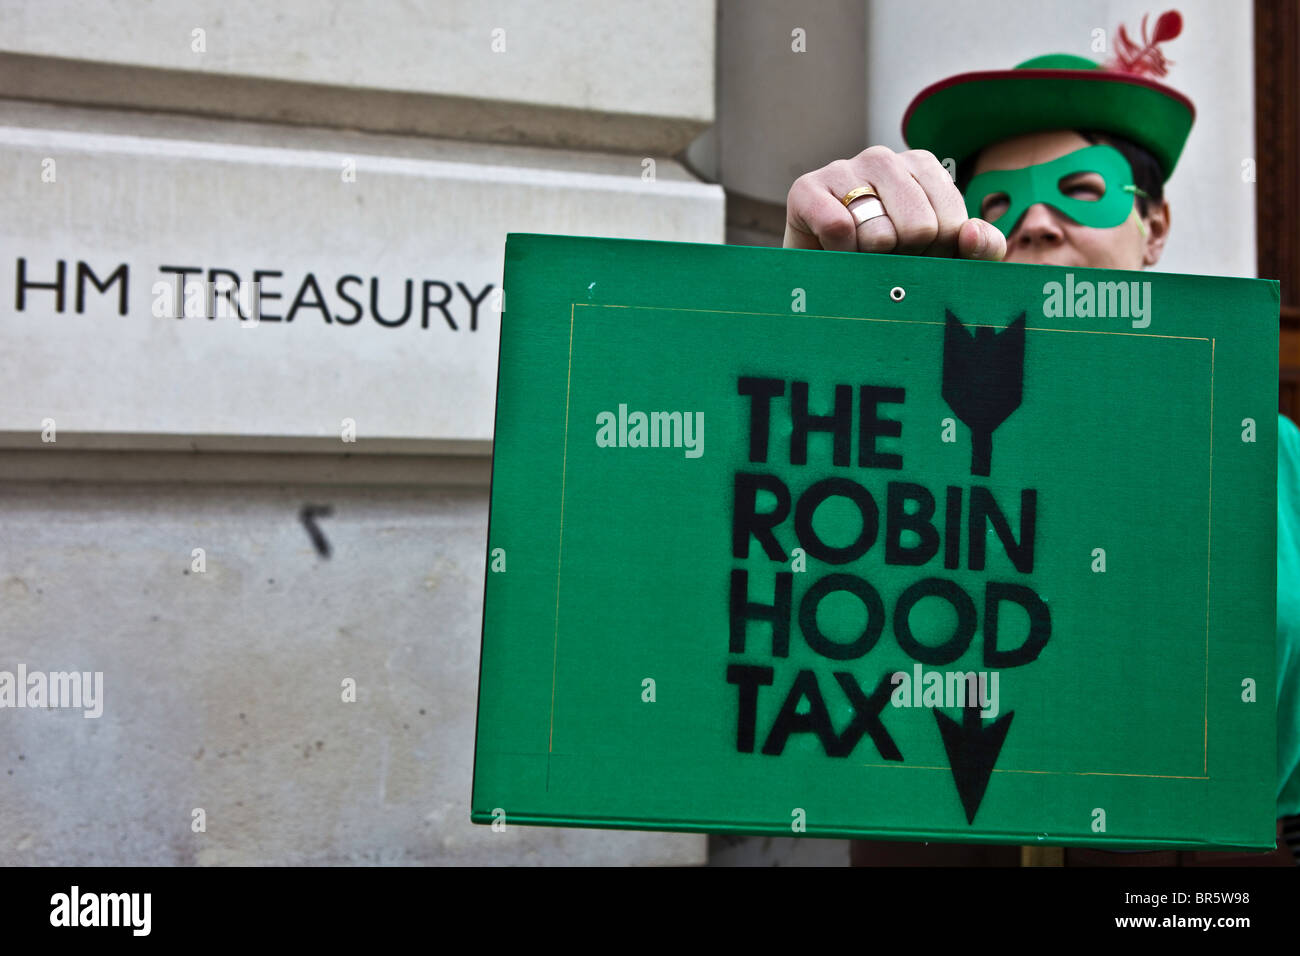 Robin Hood Tax campaign, the green-clad Robin Hoods marched to Parliament. - Stock Image